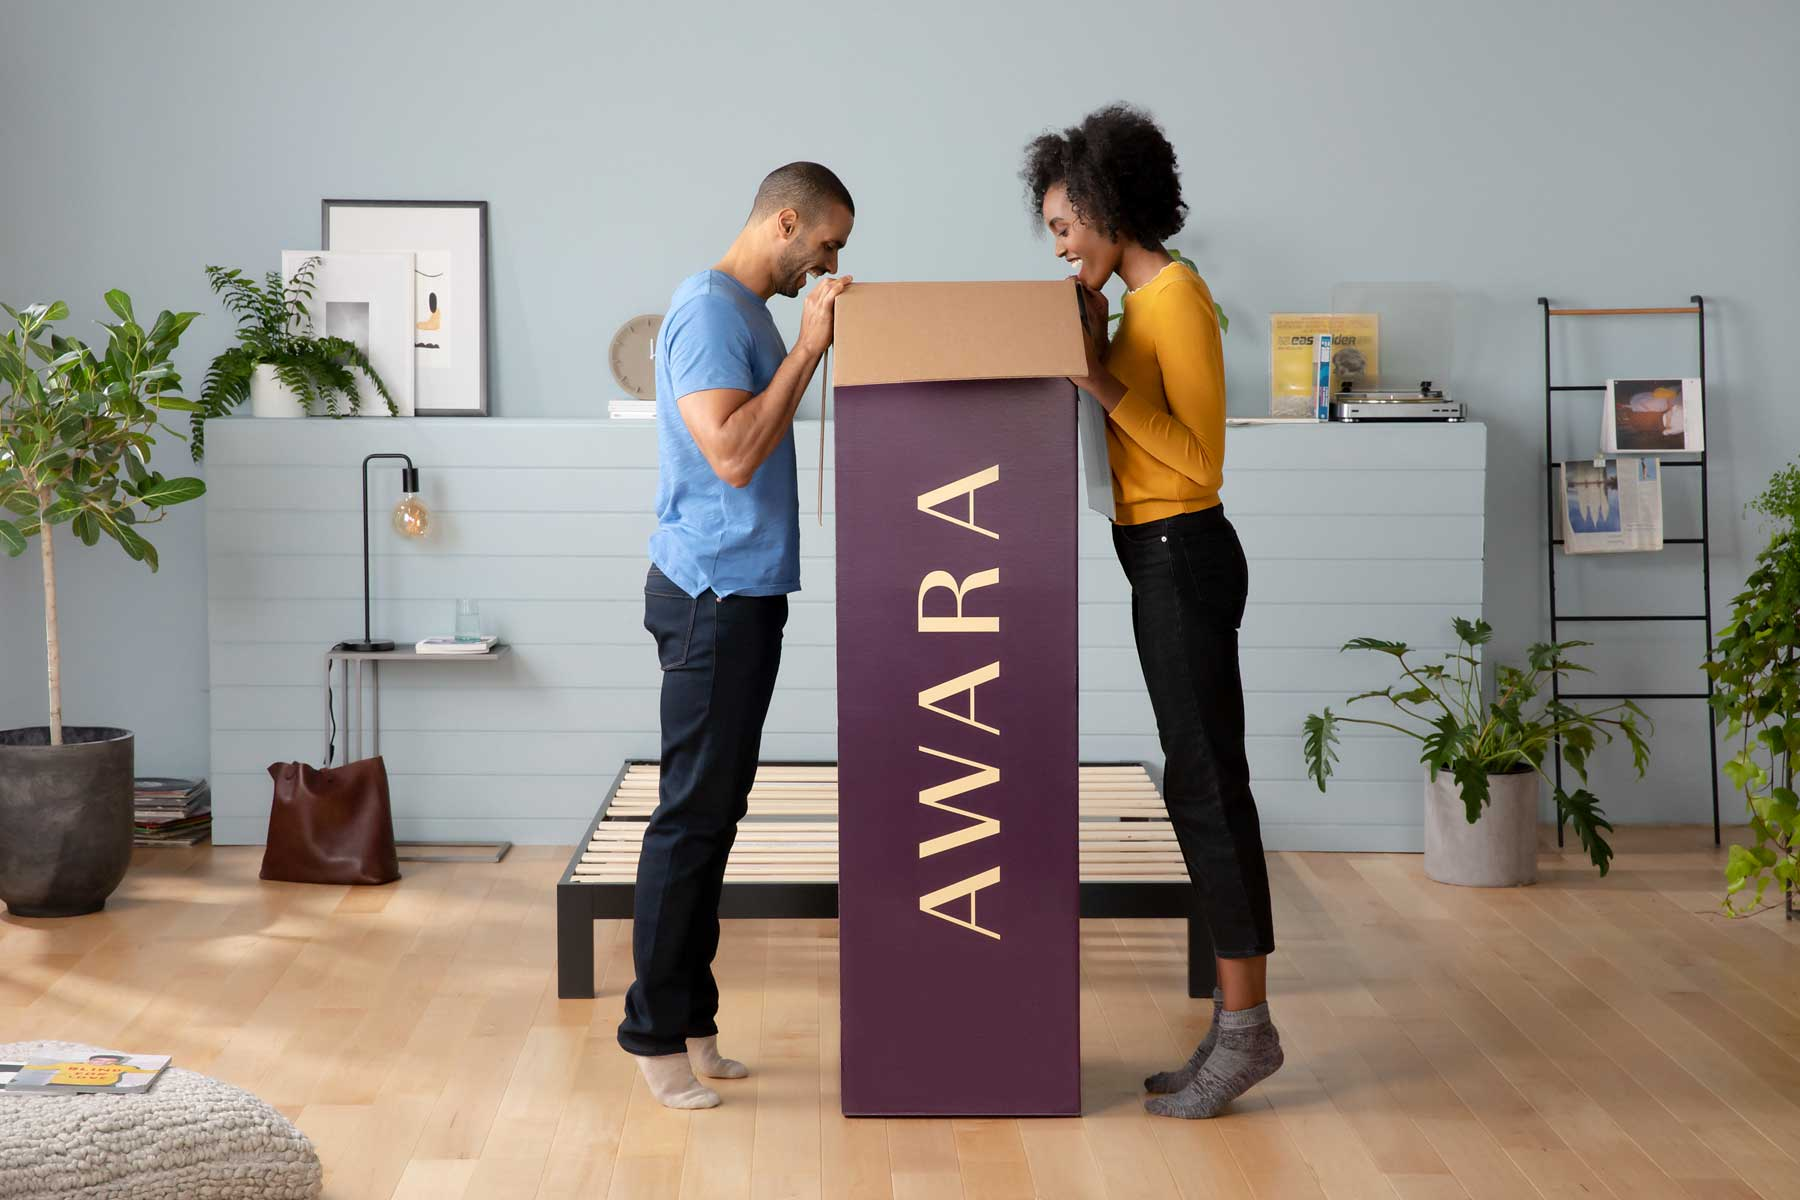 Couple peeking over the edge of a tall purple box with AWARA on the side